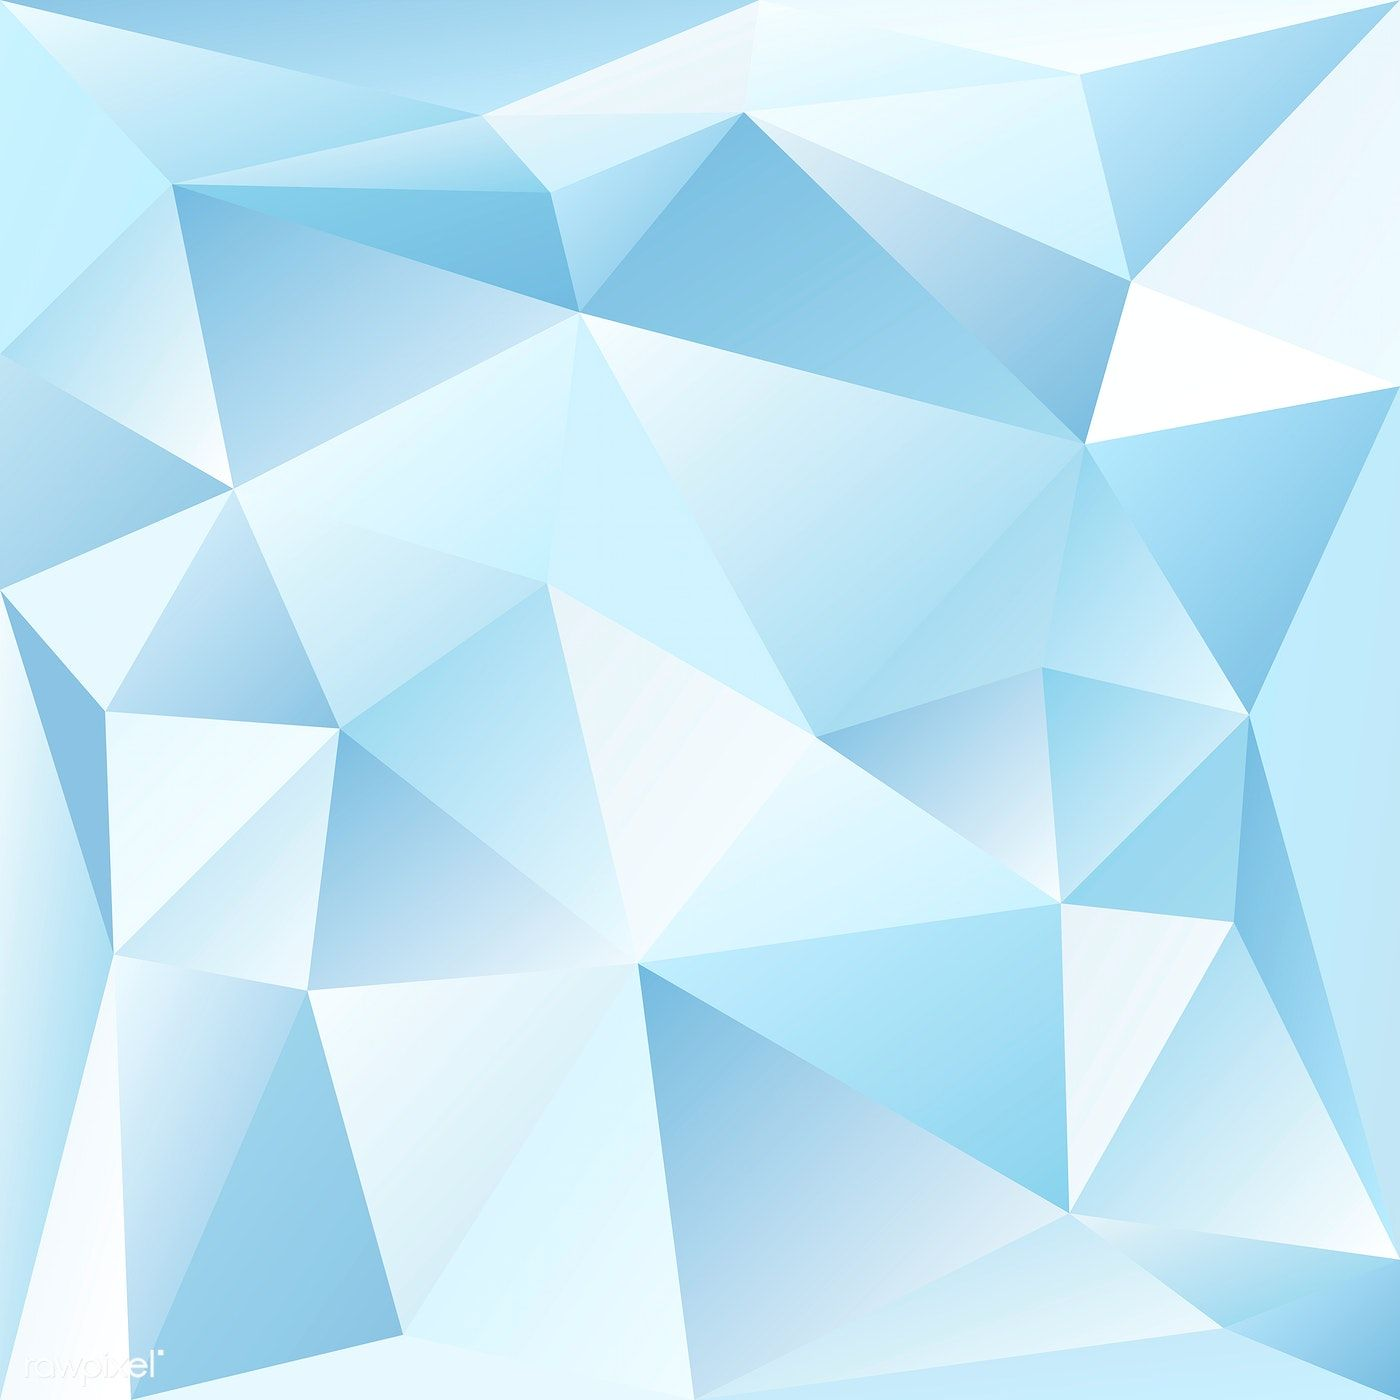 Blue And White Crystal Textured Background Free Image By